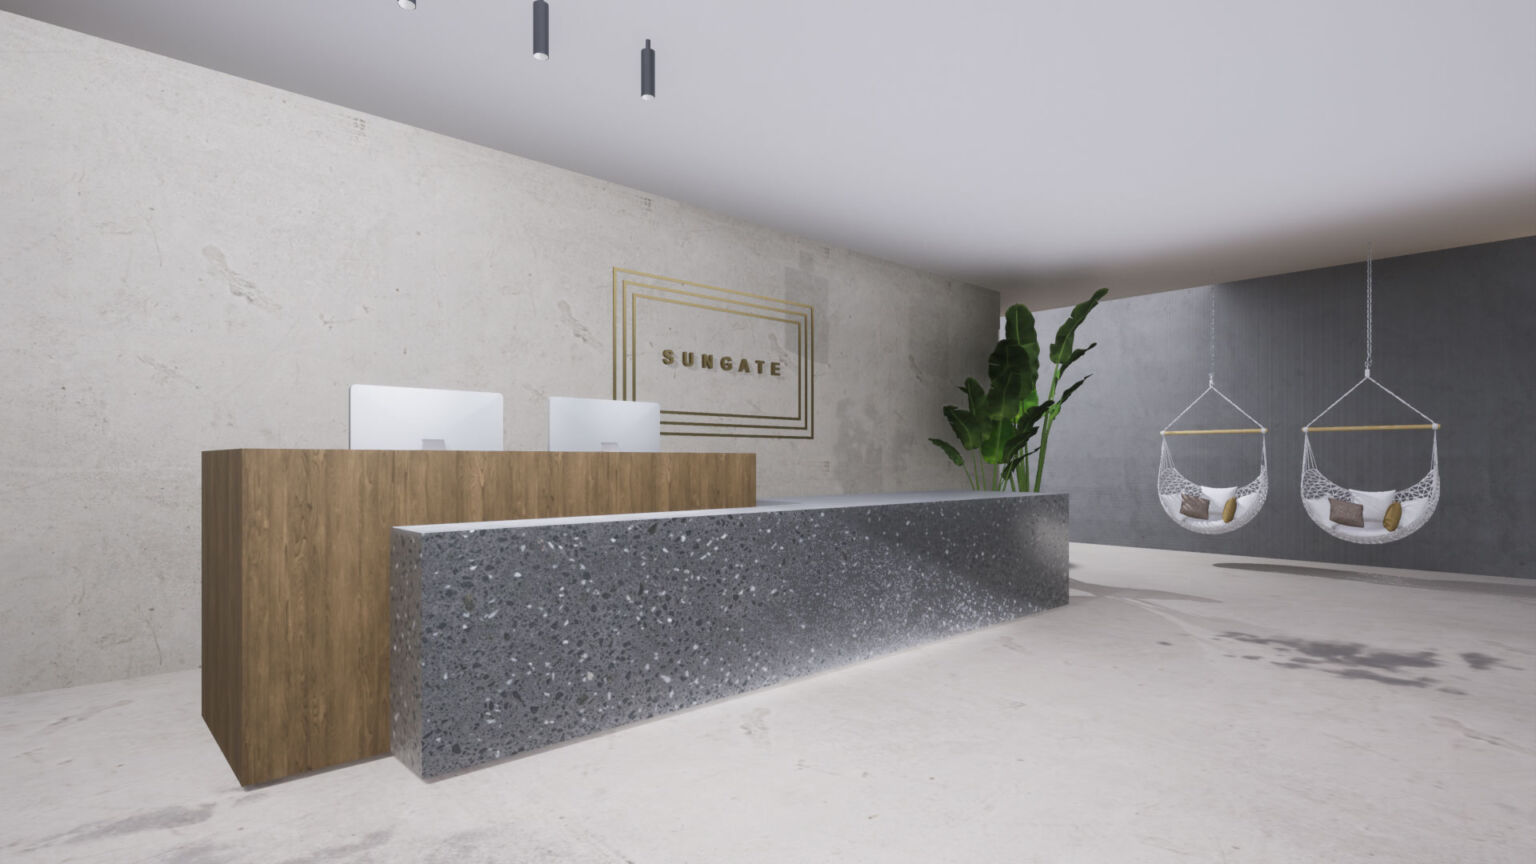 reception area for the all-excluse hotel of Sungate on the island of Corfu in Greece by ikies architects